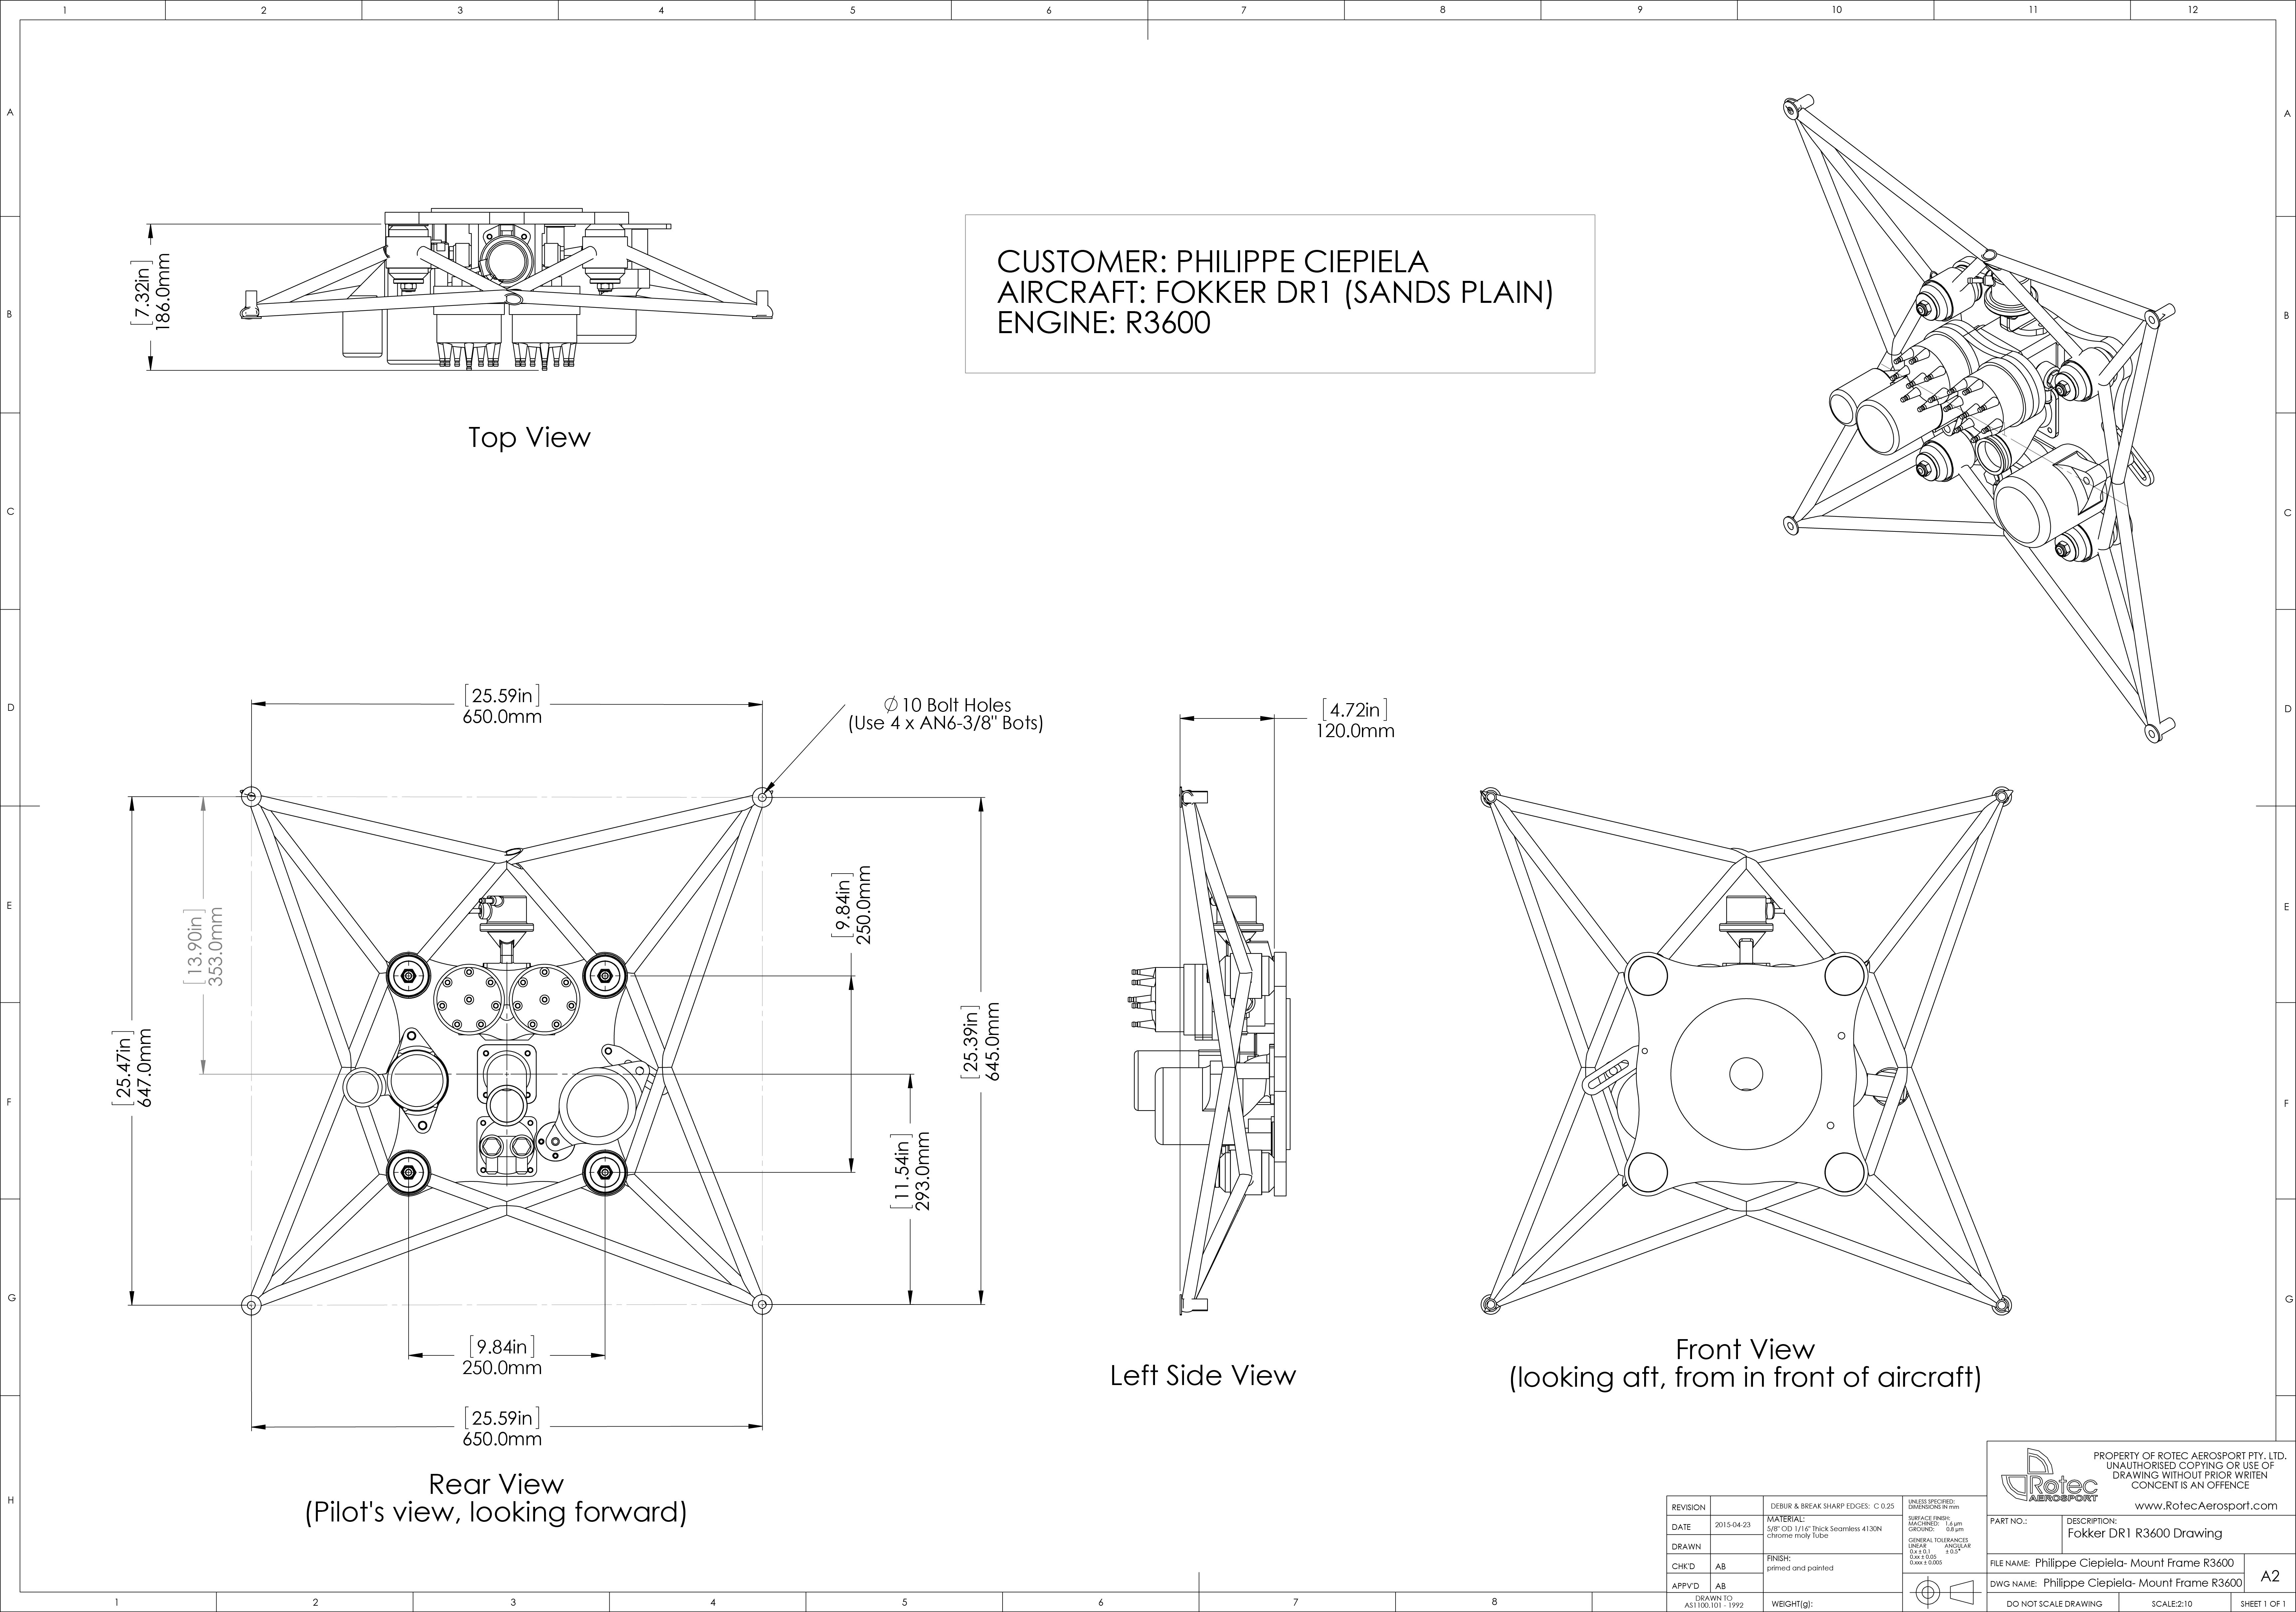 Engine Mount & Oil Tank designs | Dan Cabral - Product